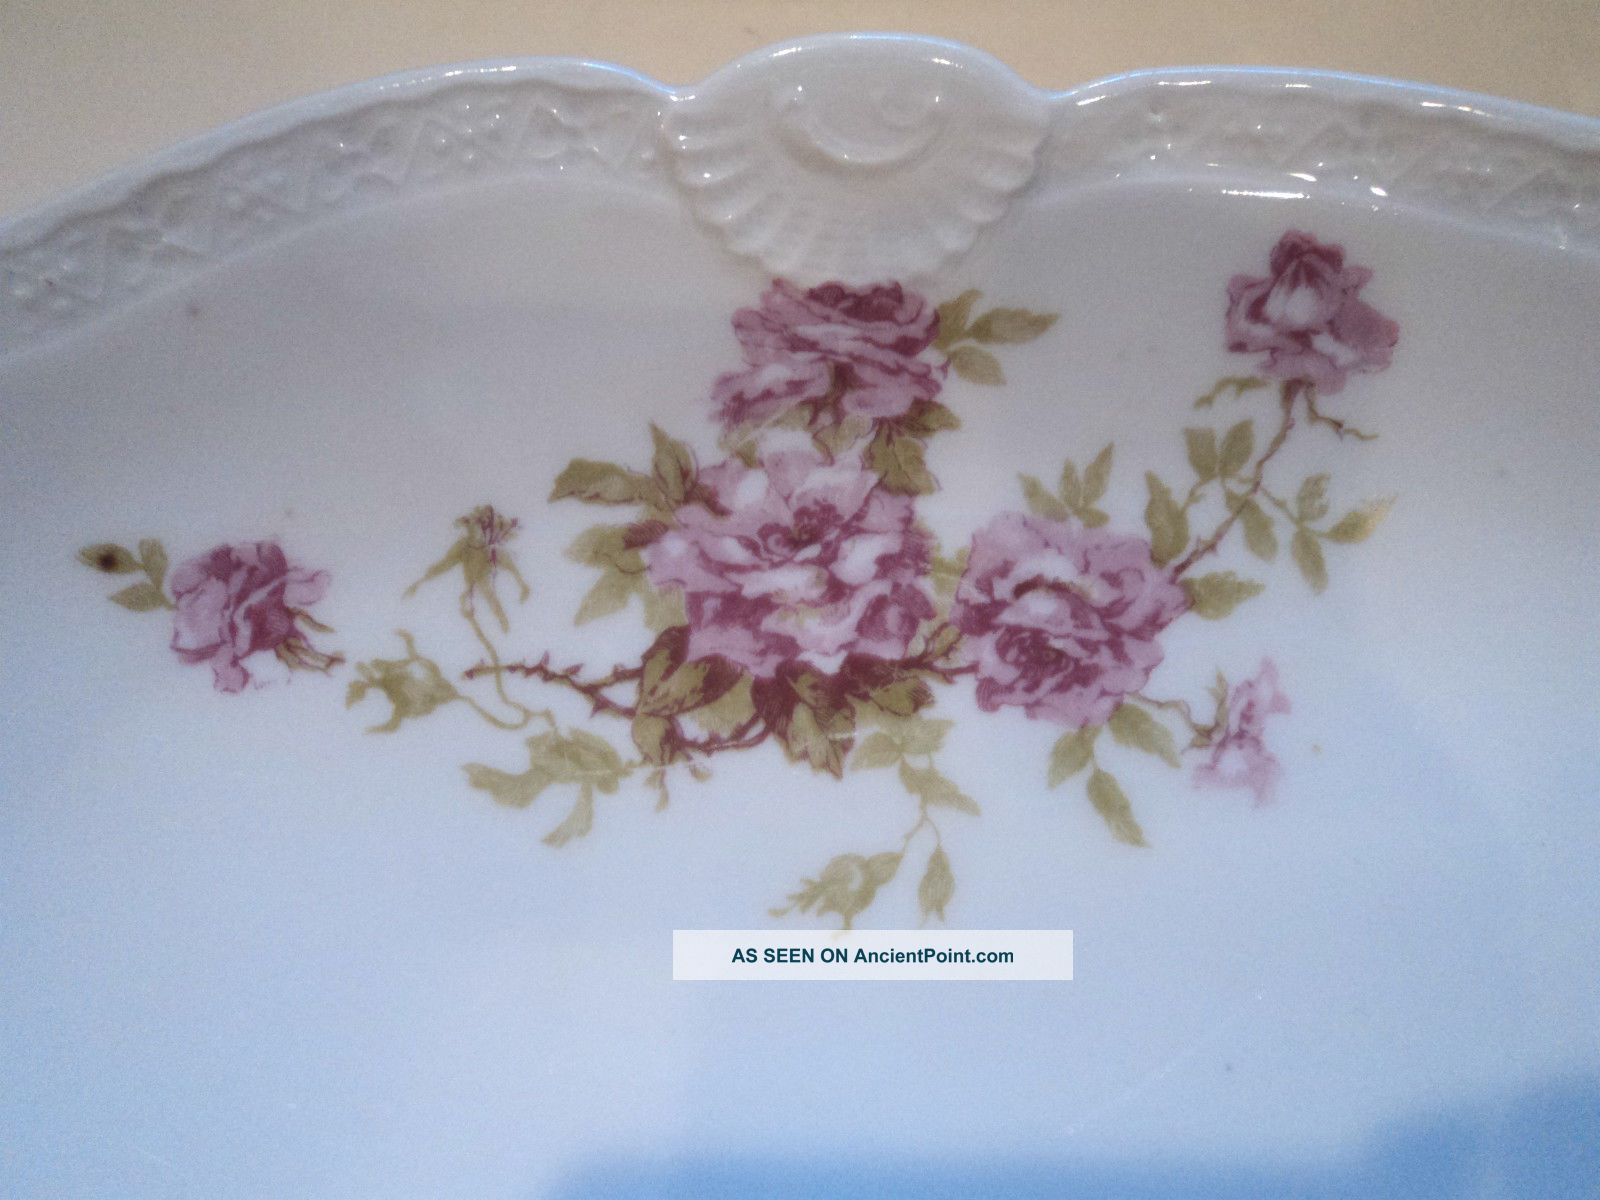 Coronet China Oval Platters From Limoges France 14 \